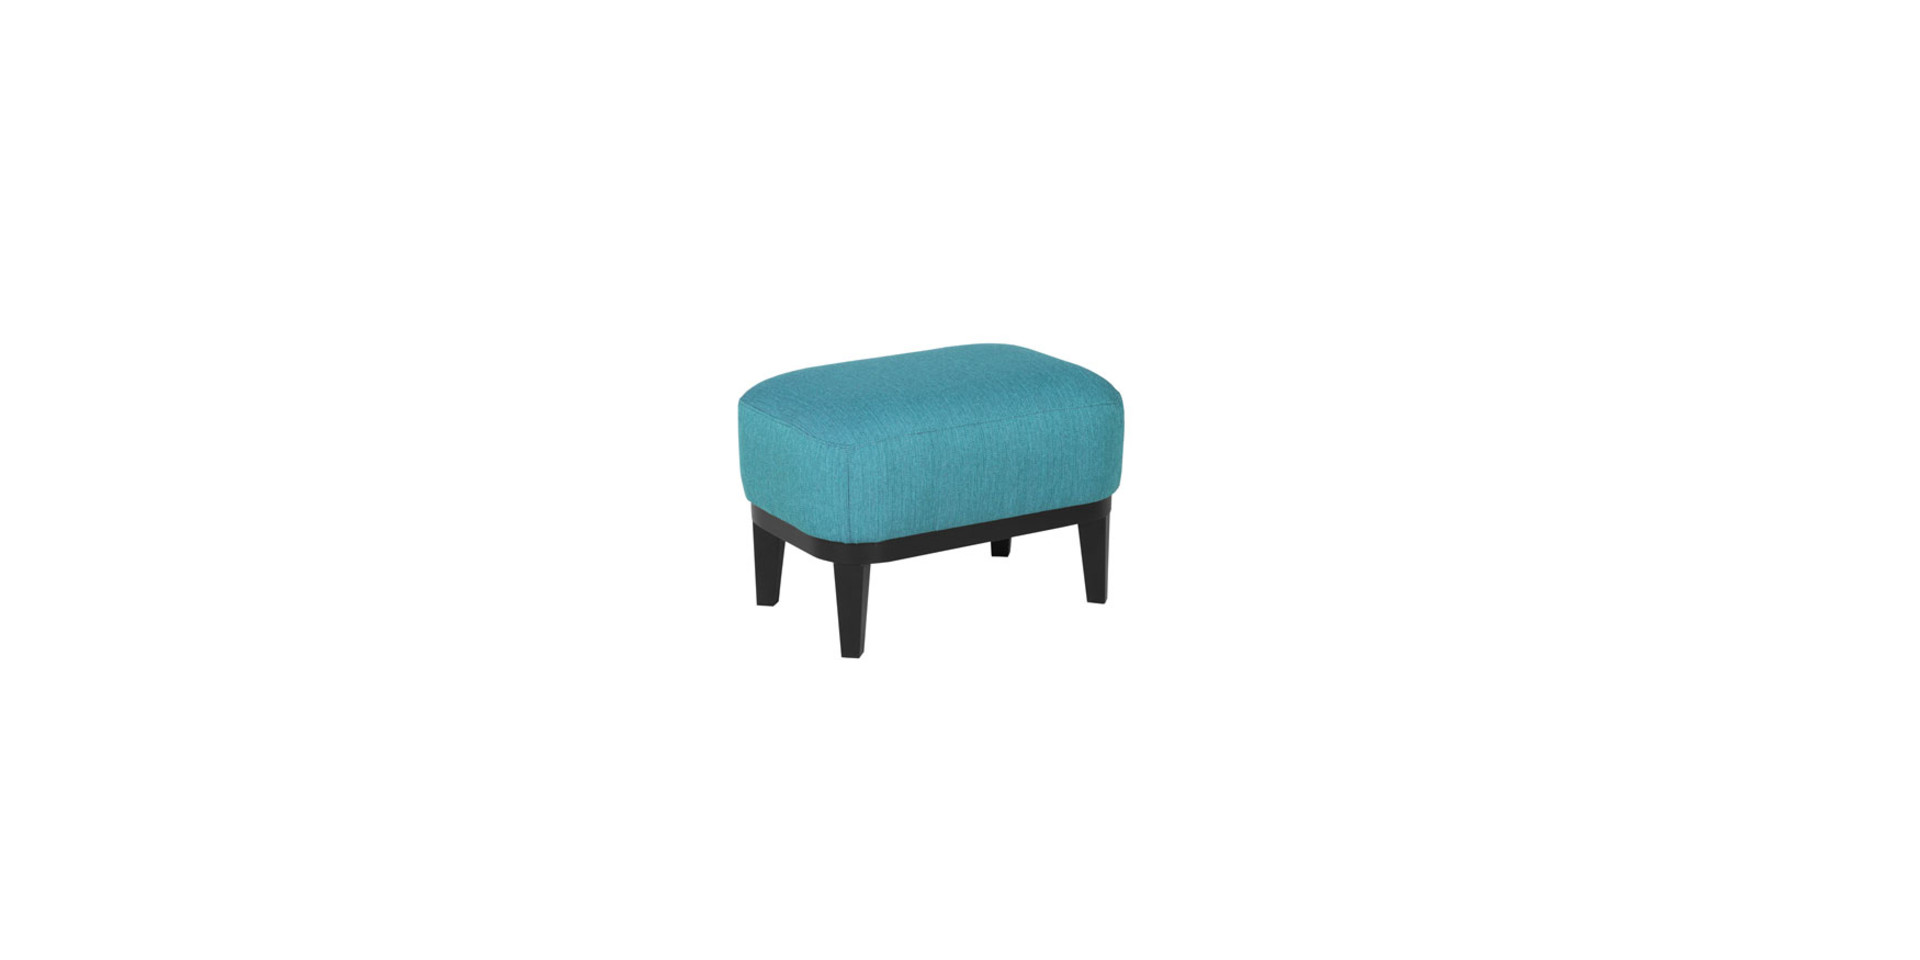 sits-donna-pouf-footstool_sony7_turquoise_3_0_0